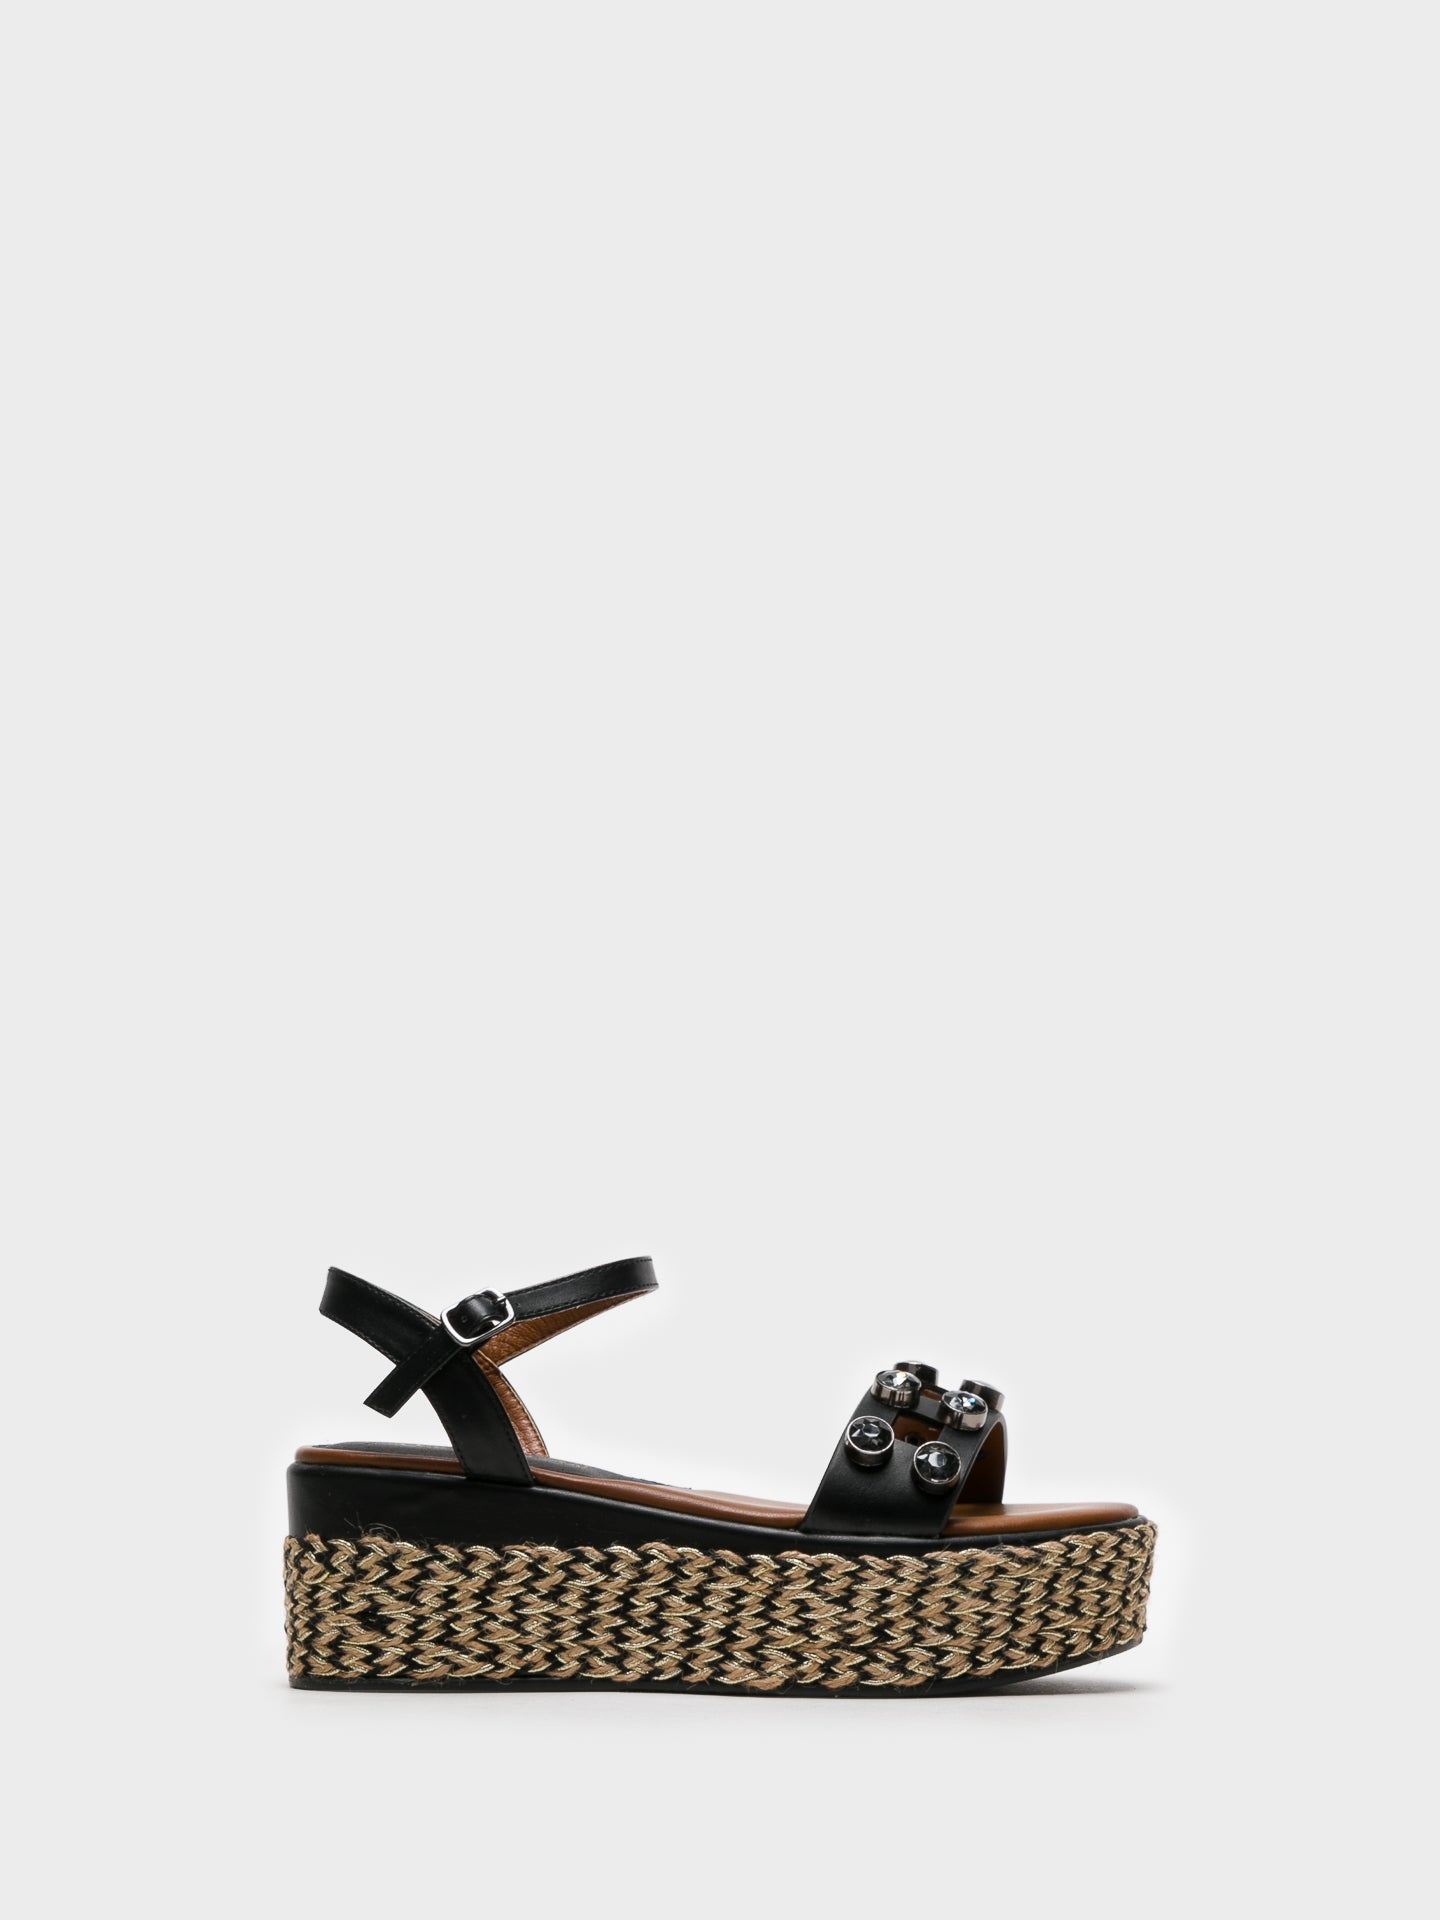 Cafè Noir Black Buckle Sandals